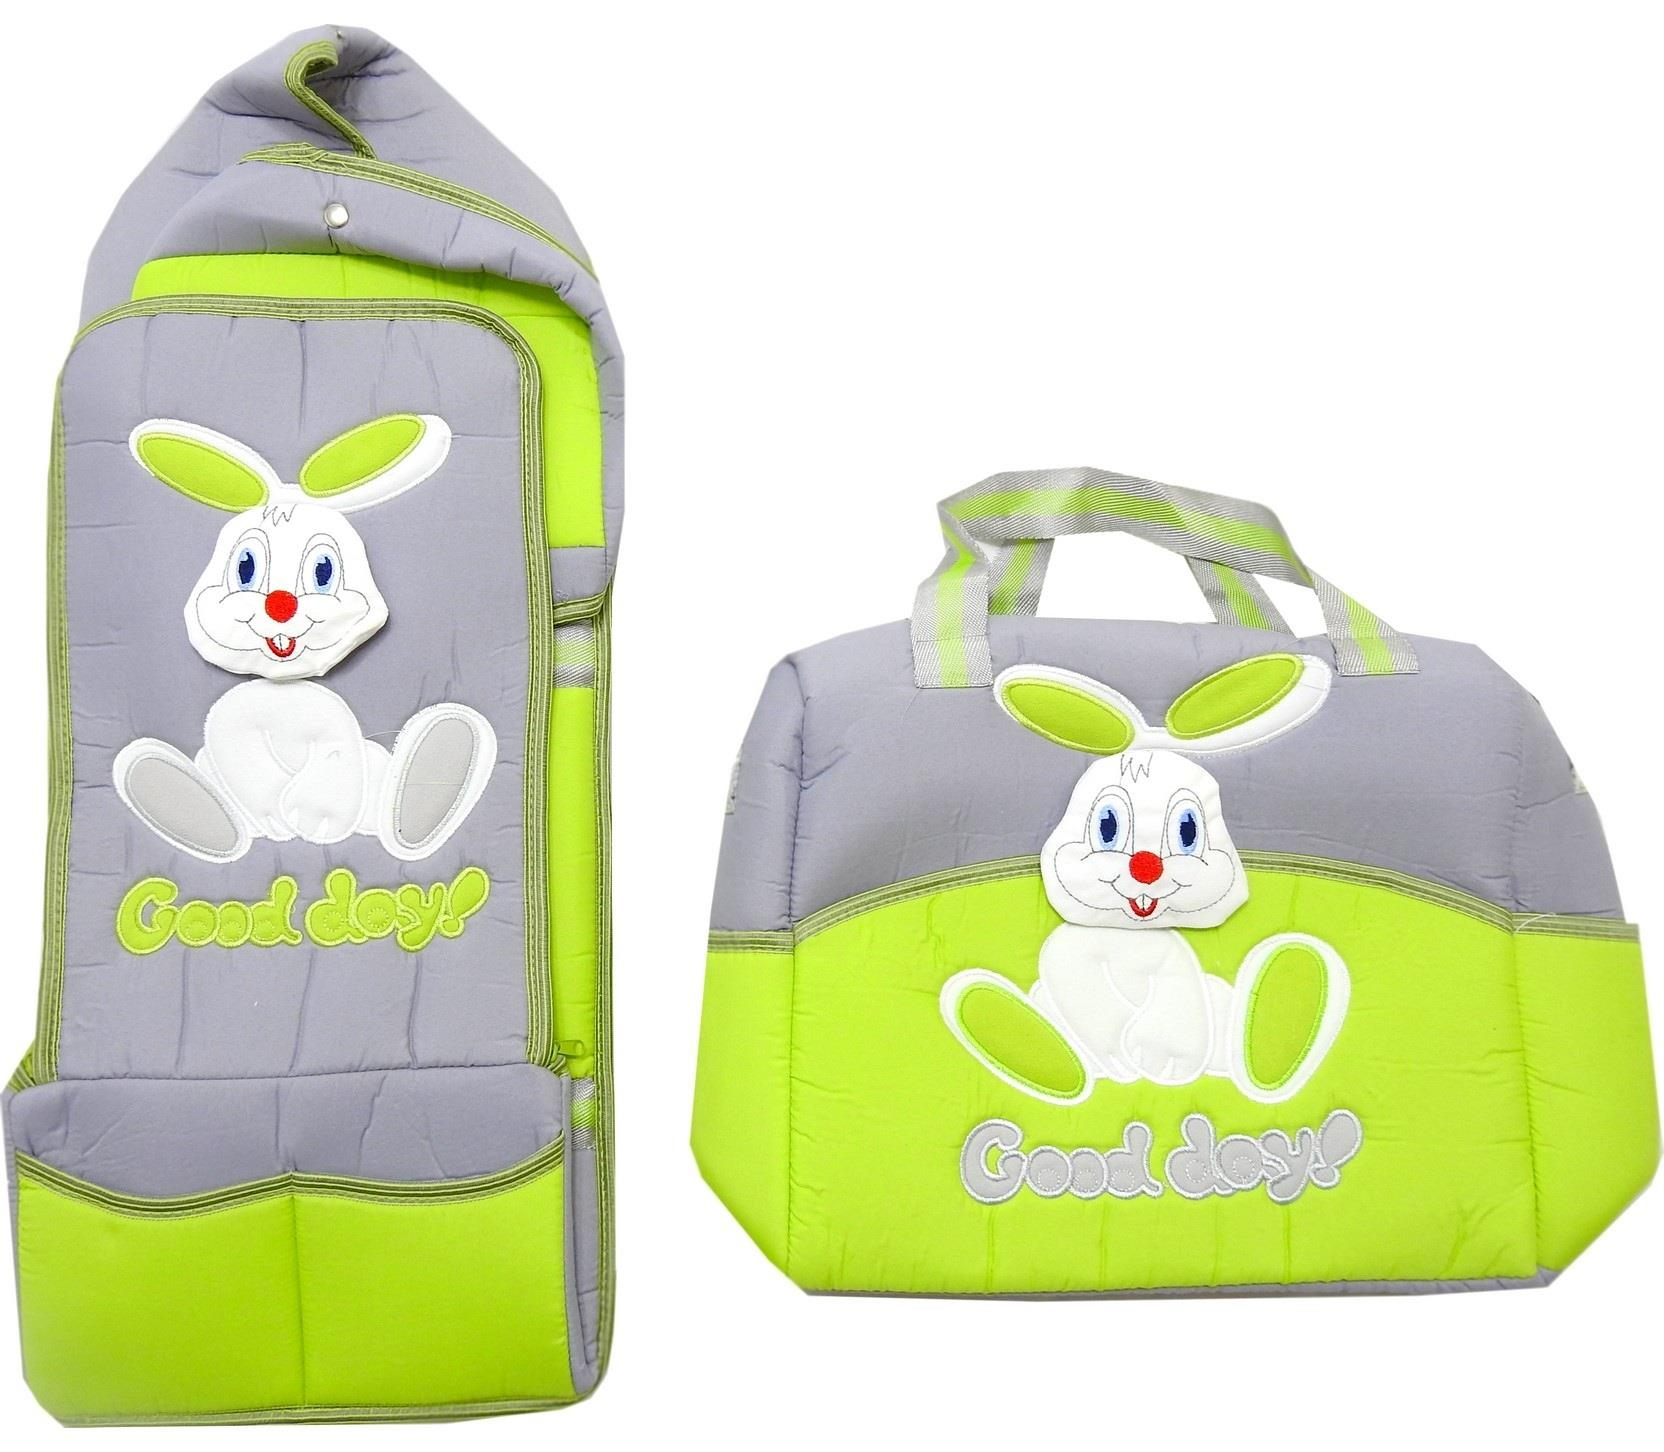 BUNNY PRINTED CARE BAG & CARRYCOT DOUBLE SET FOR BABY